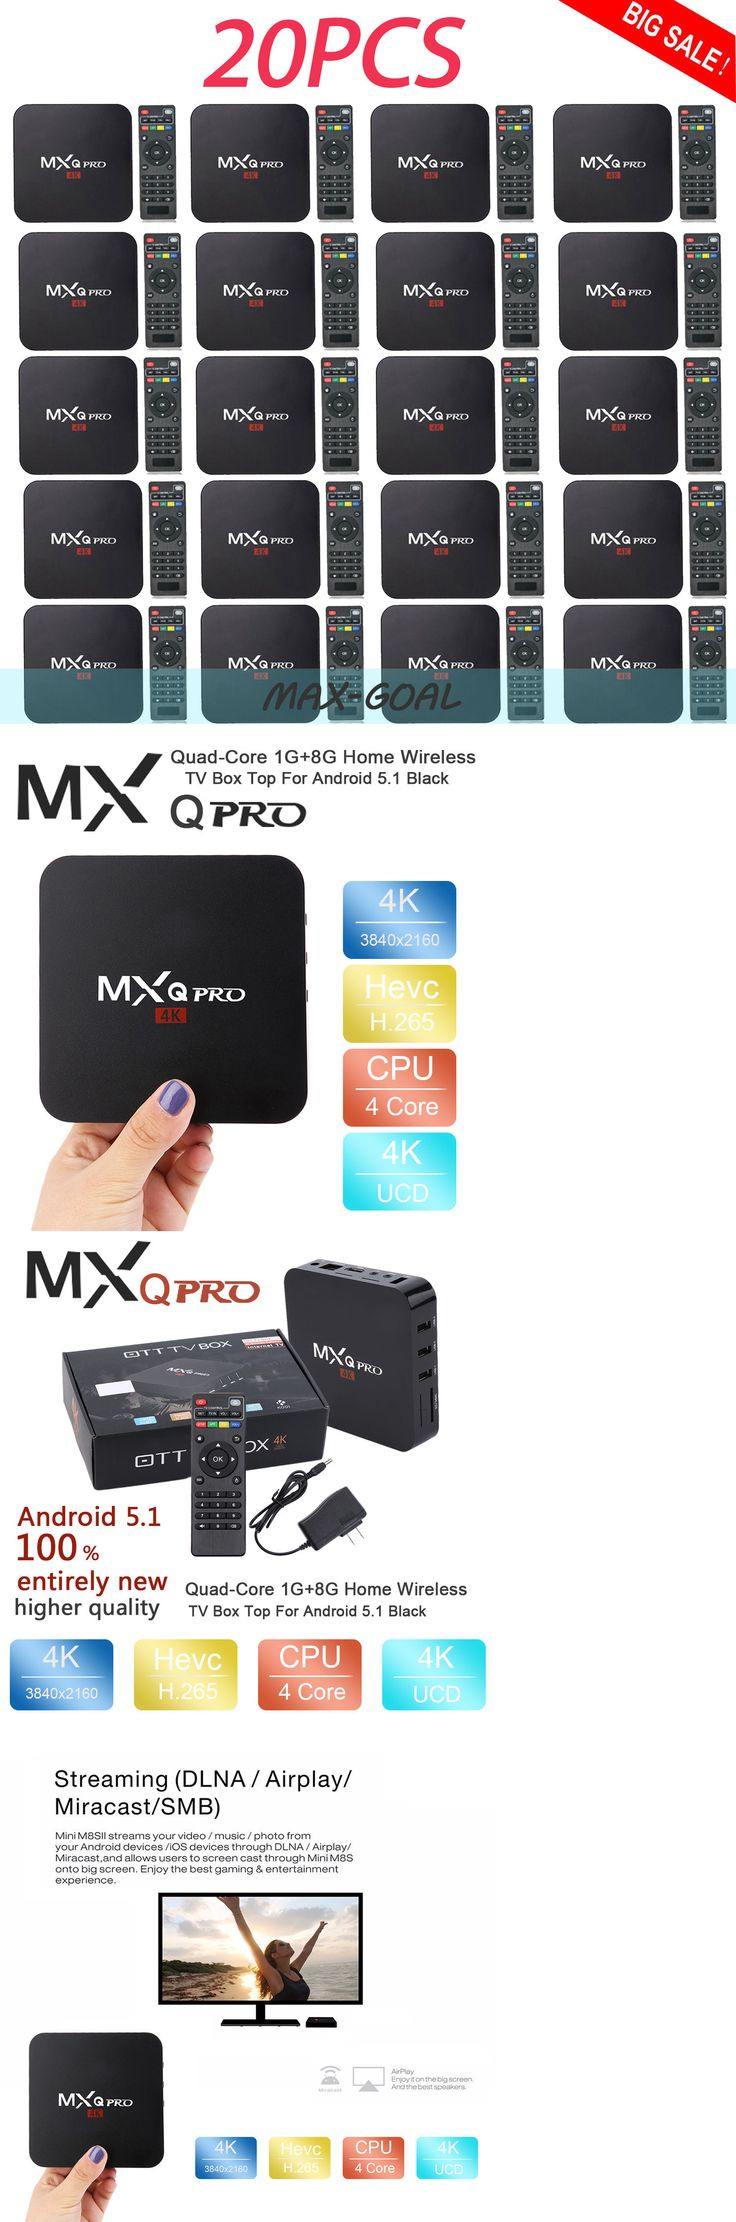 Cable TV Boxes: Lot 20 Mxq-Pro Quad Core Smart Tv Box Full Load 4K Android 6.0 Hdmi Max -> BUY IT NOW ONLY: $579.94 on eBay!